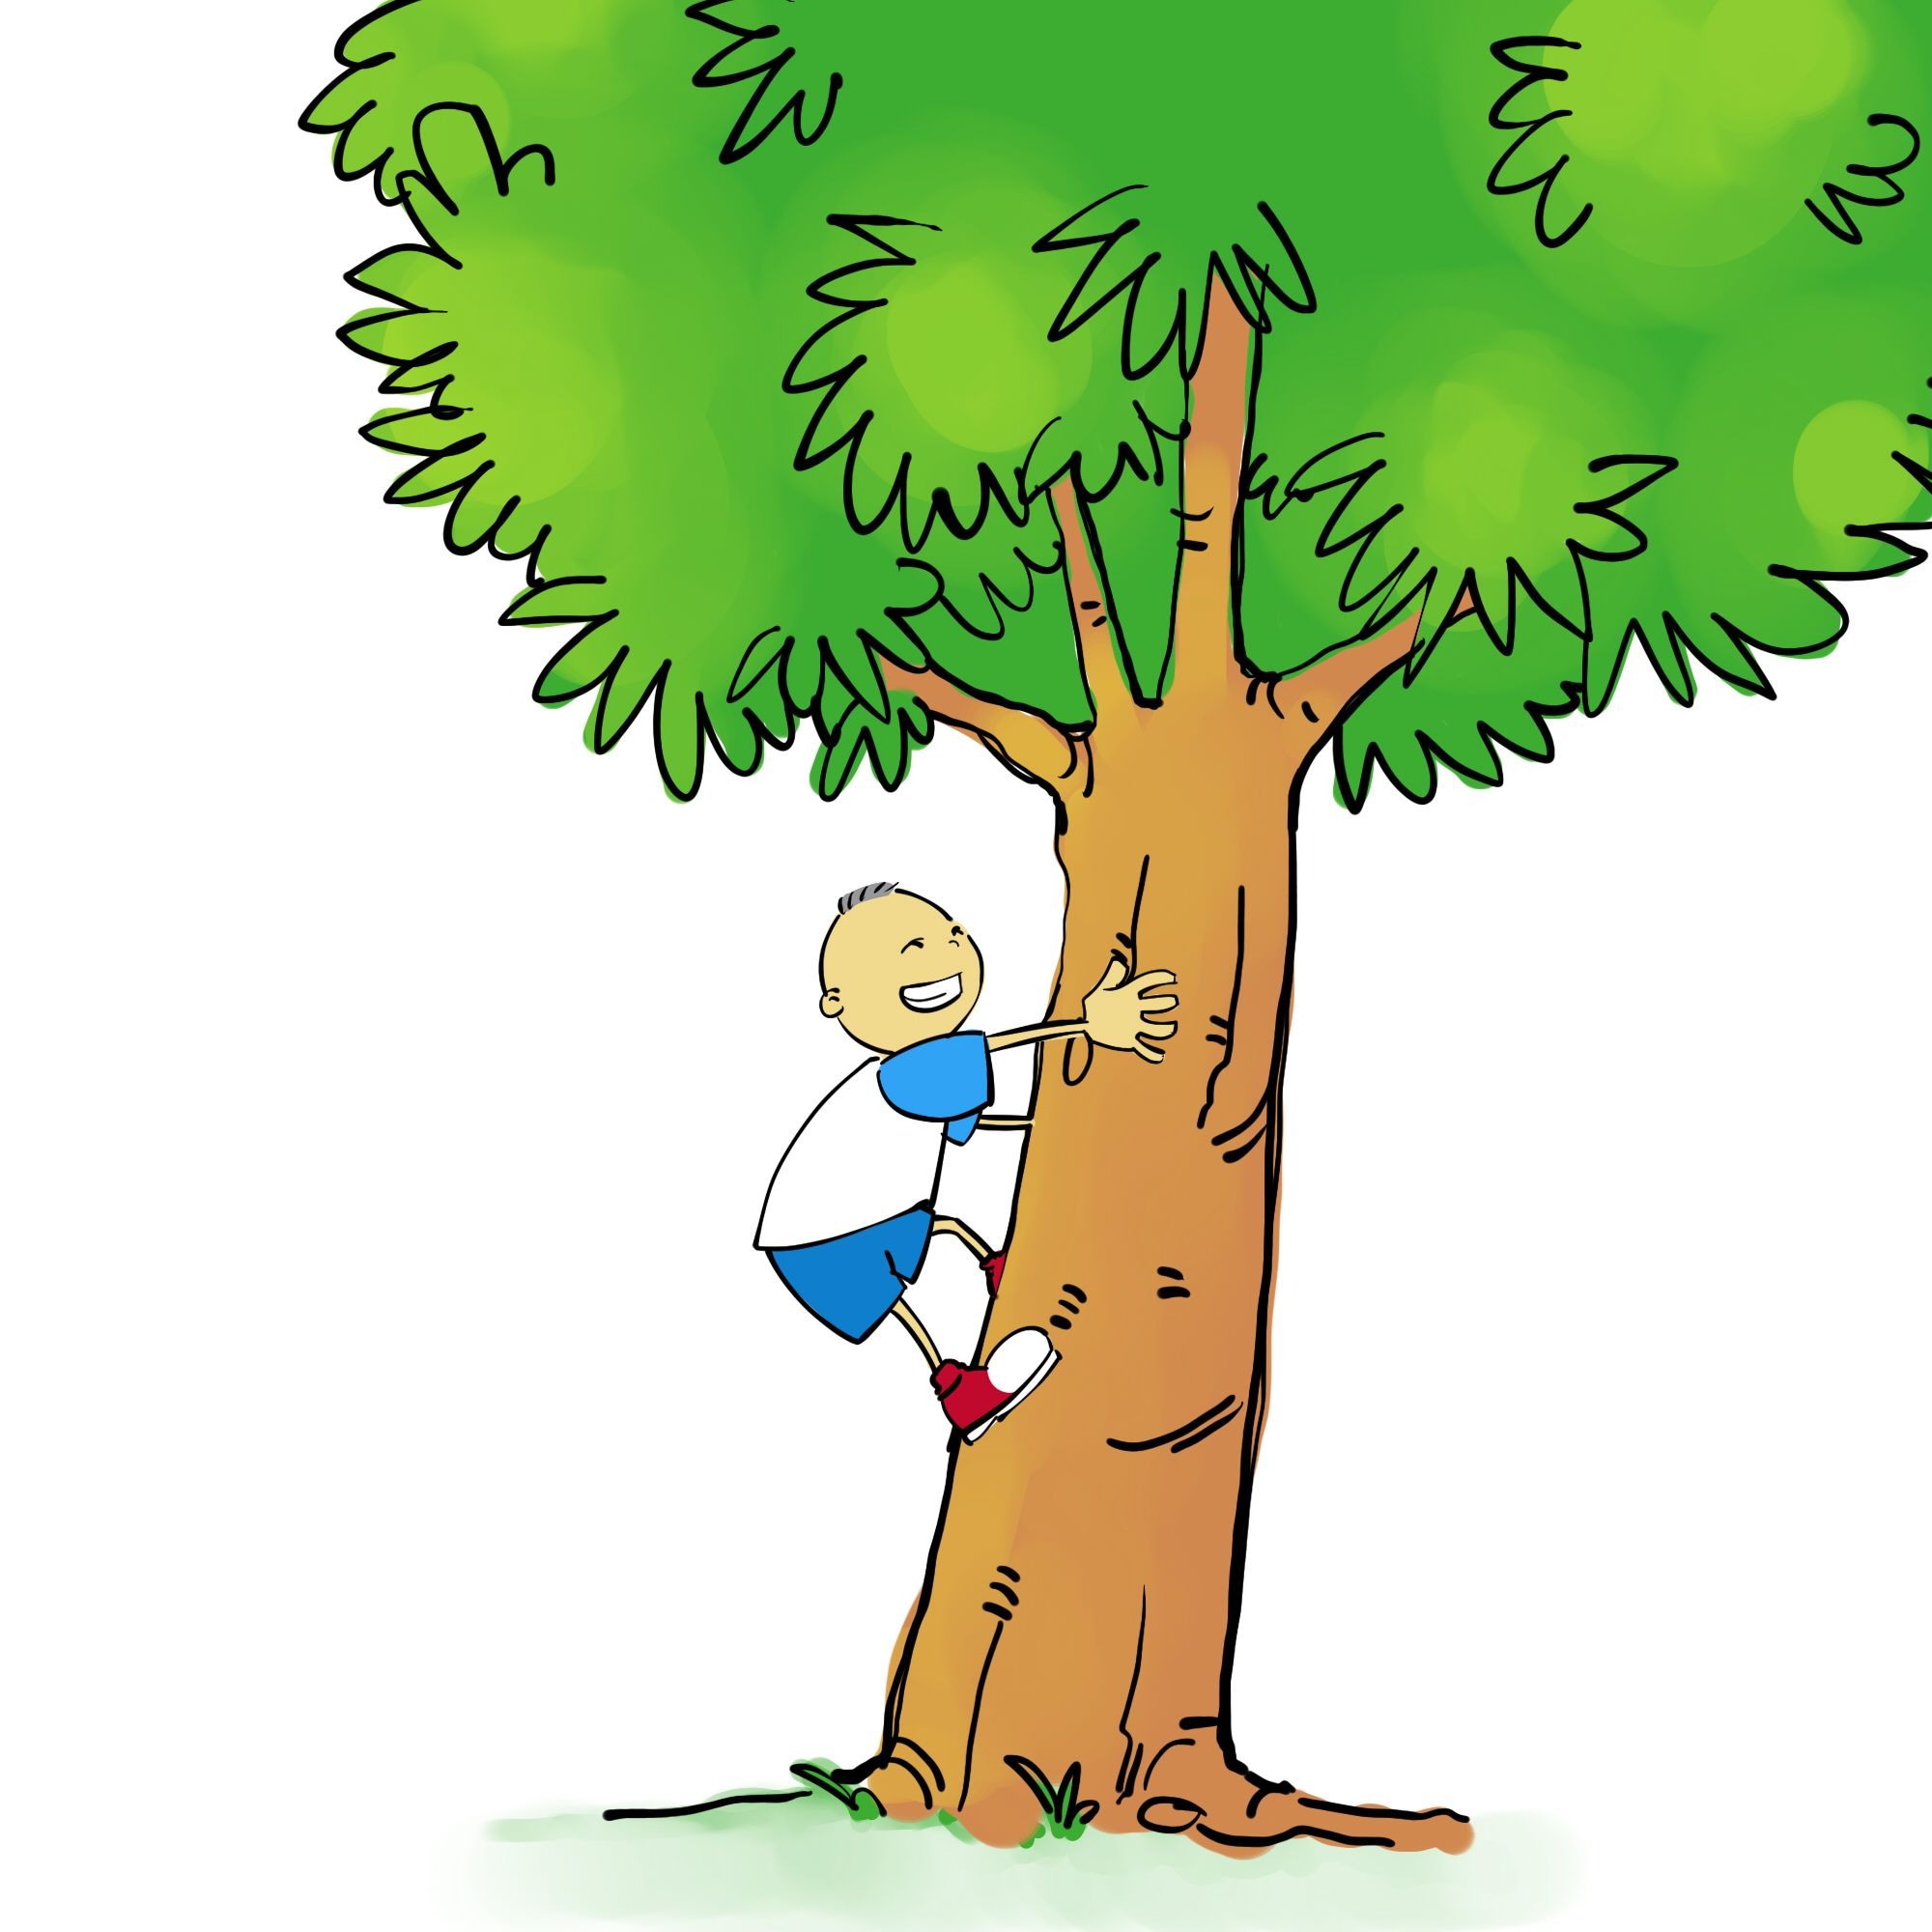 Tree its a boy clipart image black and white stock Pin by Erika Van Zyl on Do not climb tree | Climbing, Tree ... image black and white stock